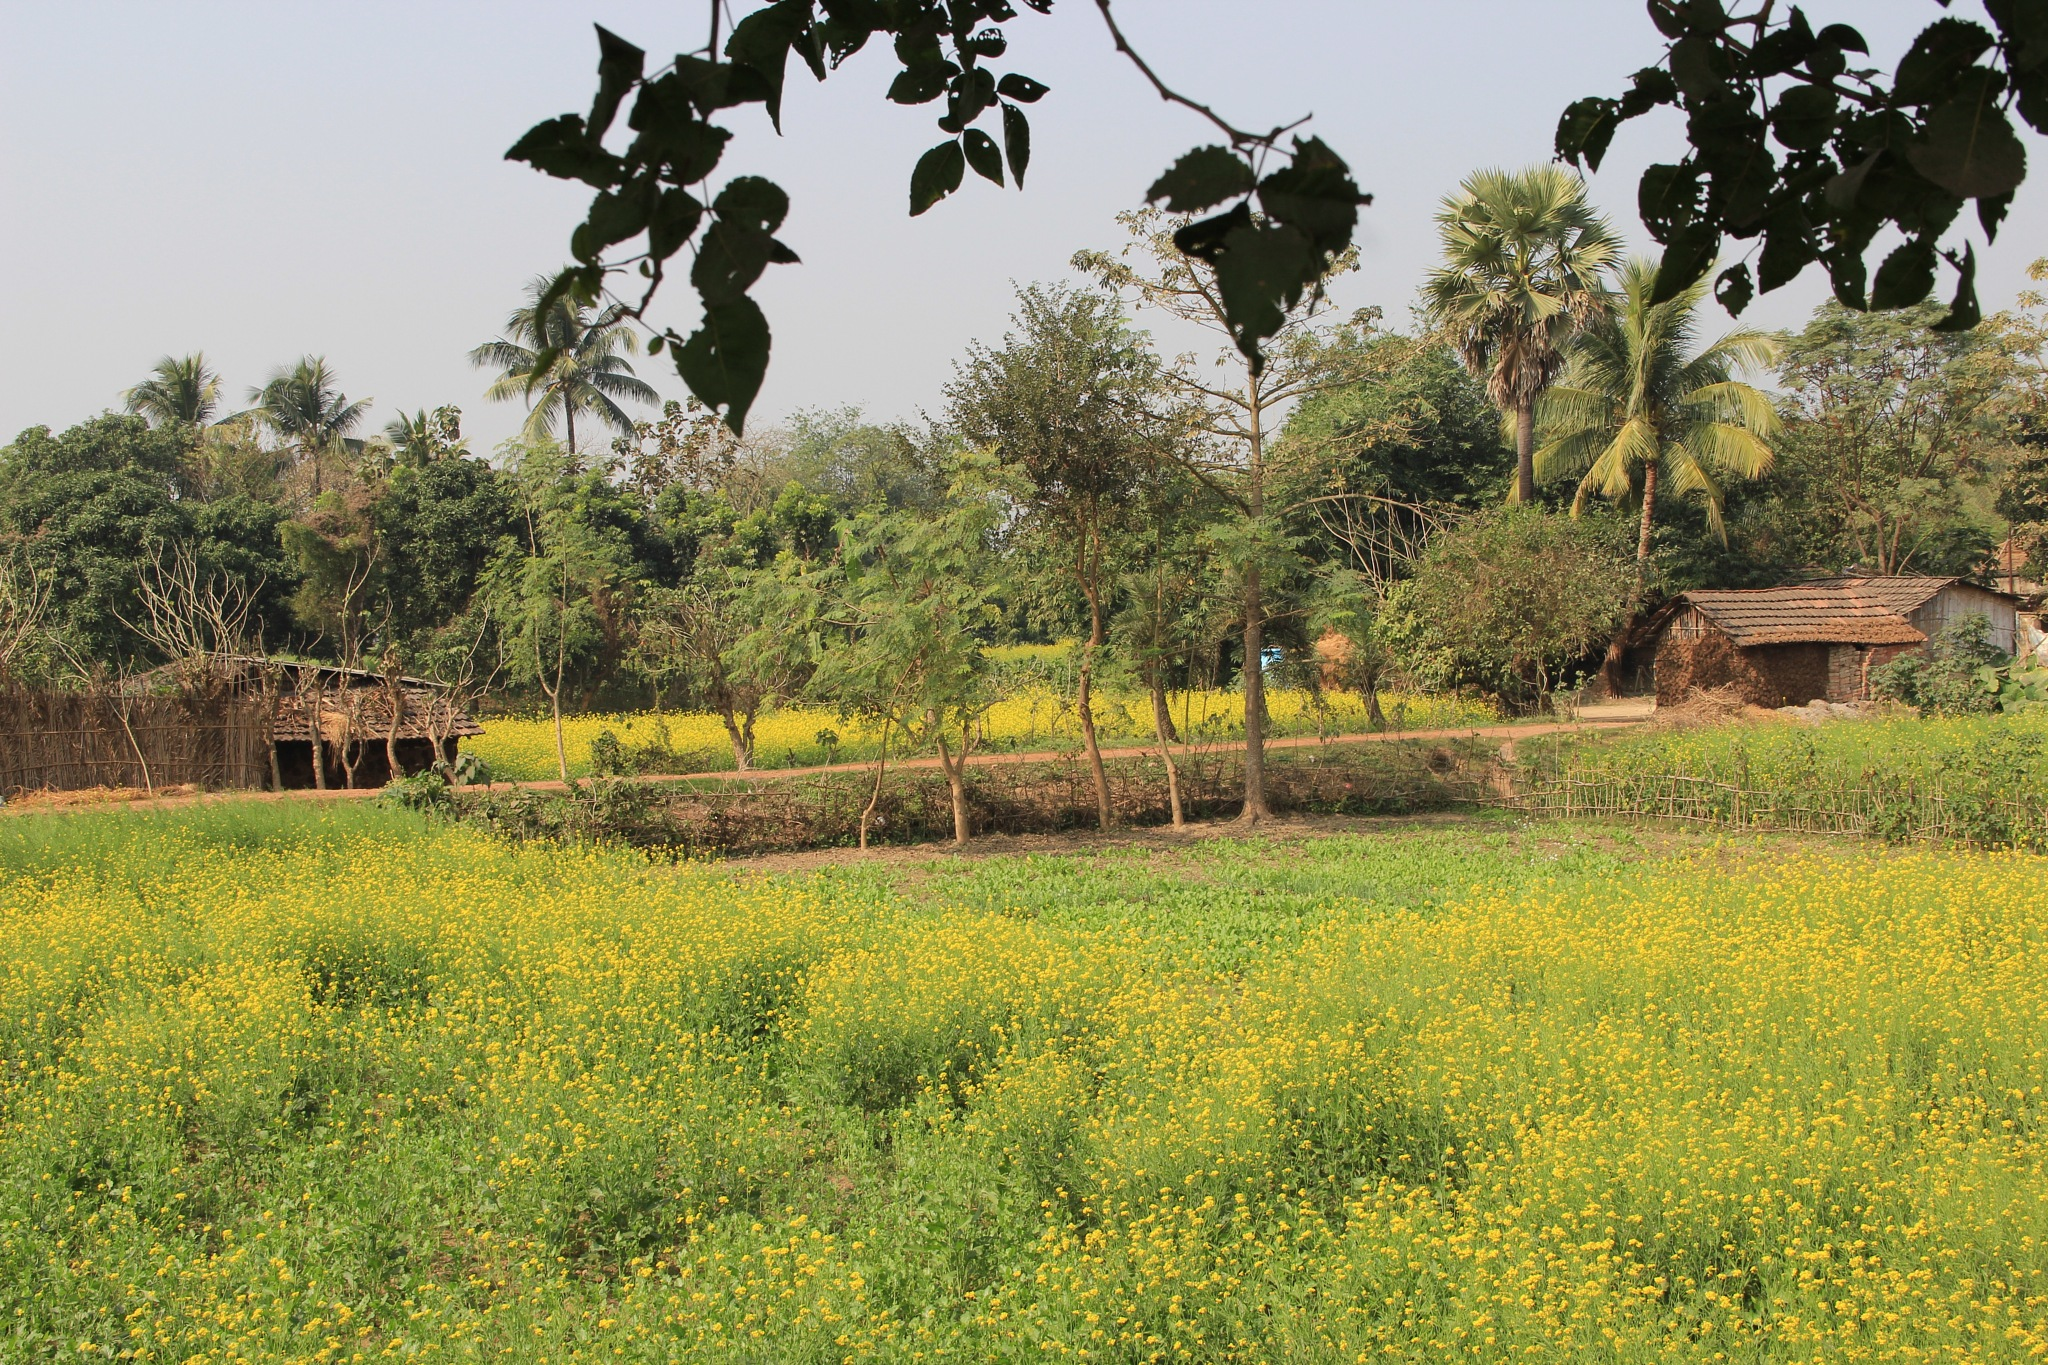 Country Side  by surajit